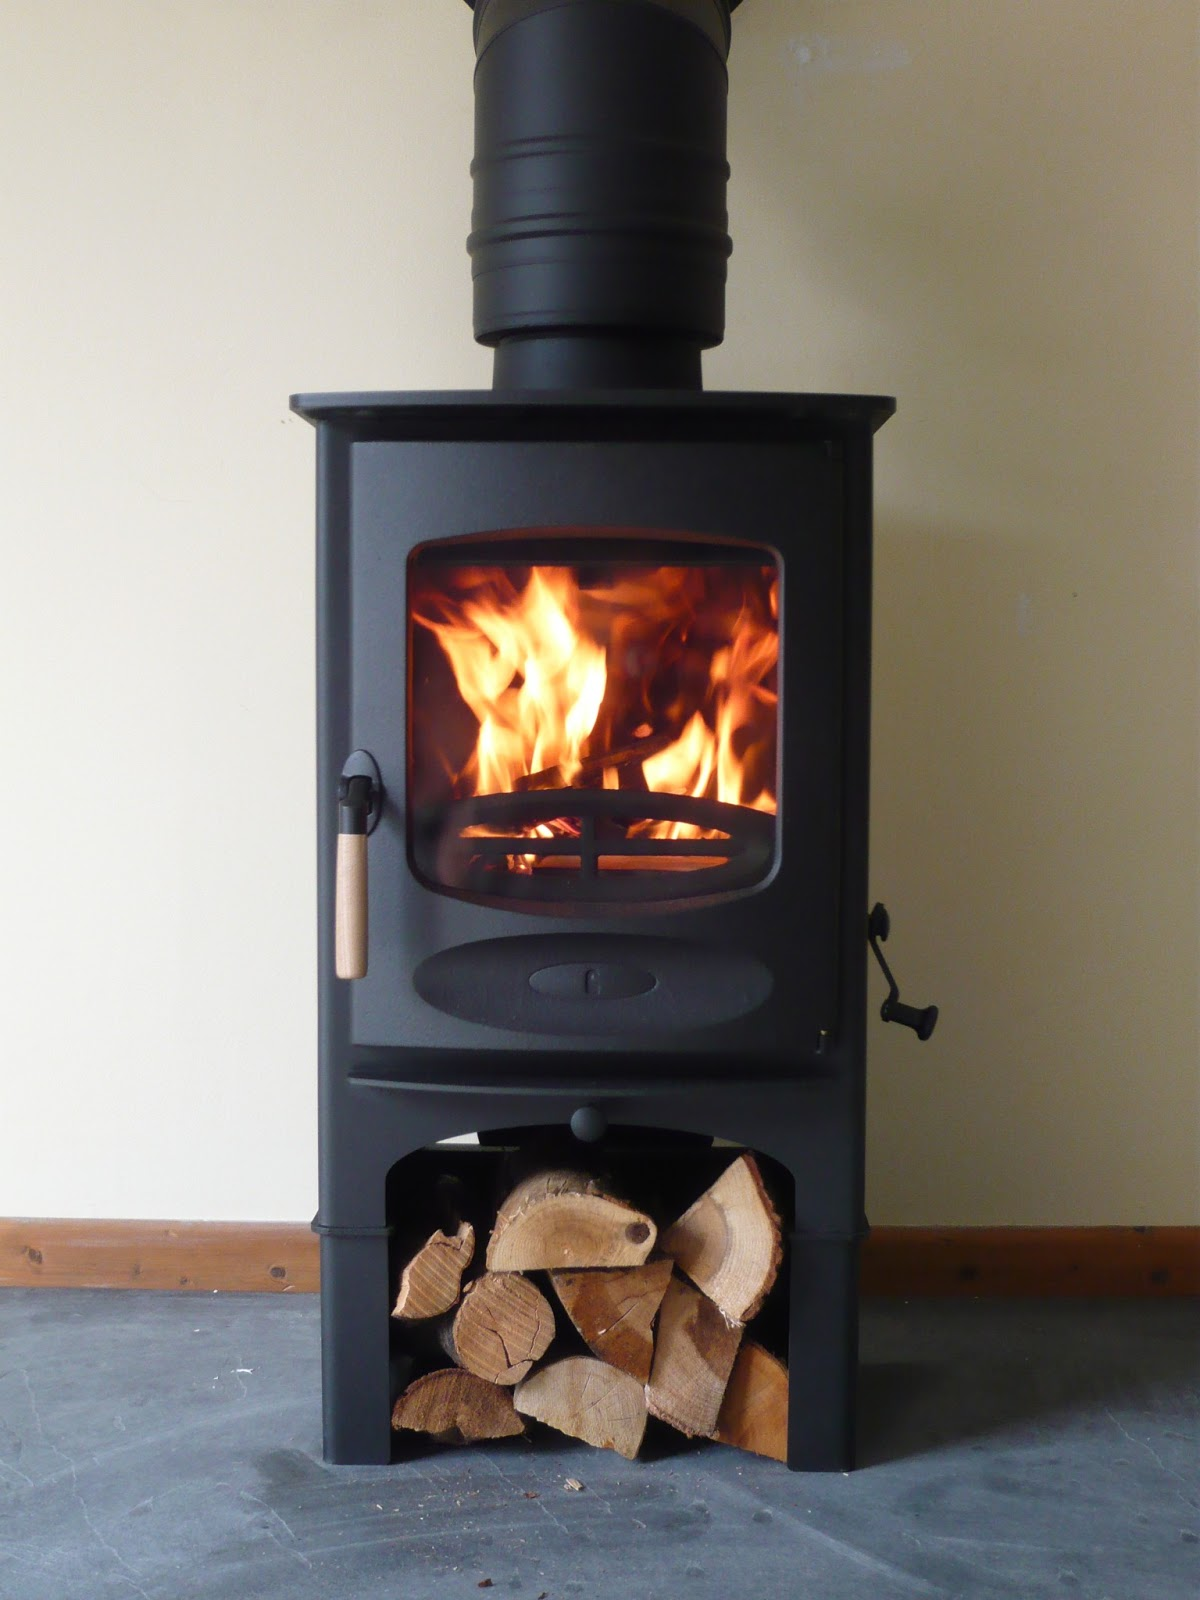 redwood stoves ltd cornwall january 2013. Black Bedroom Furniture Sets. Home Design Ideas